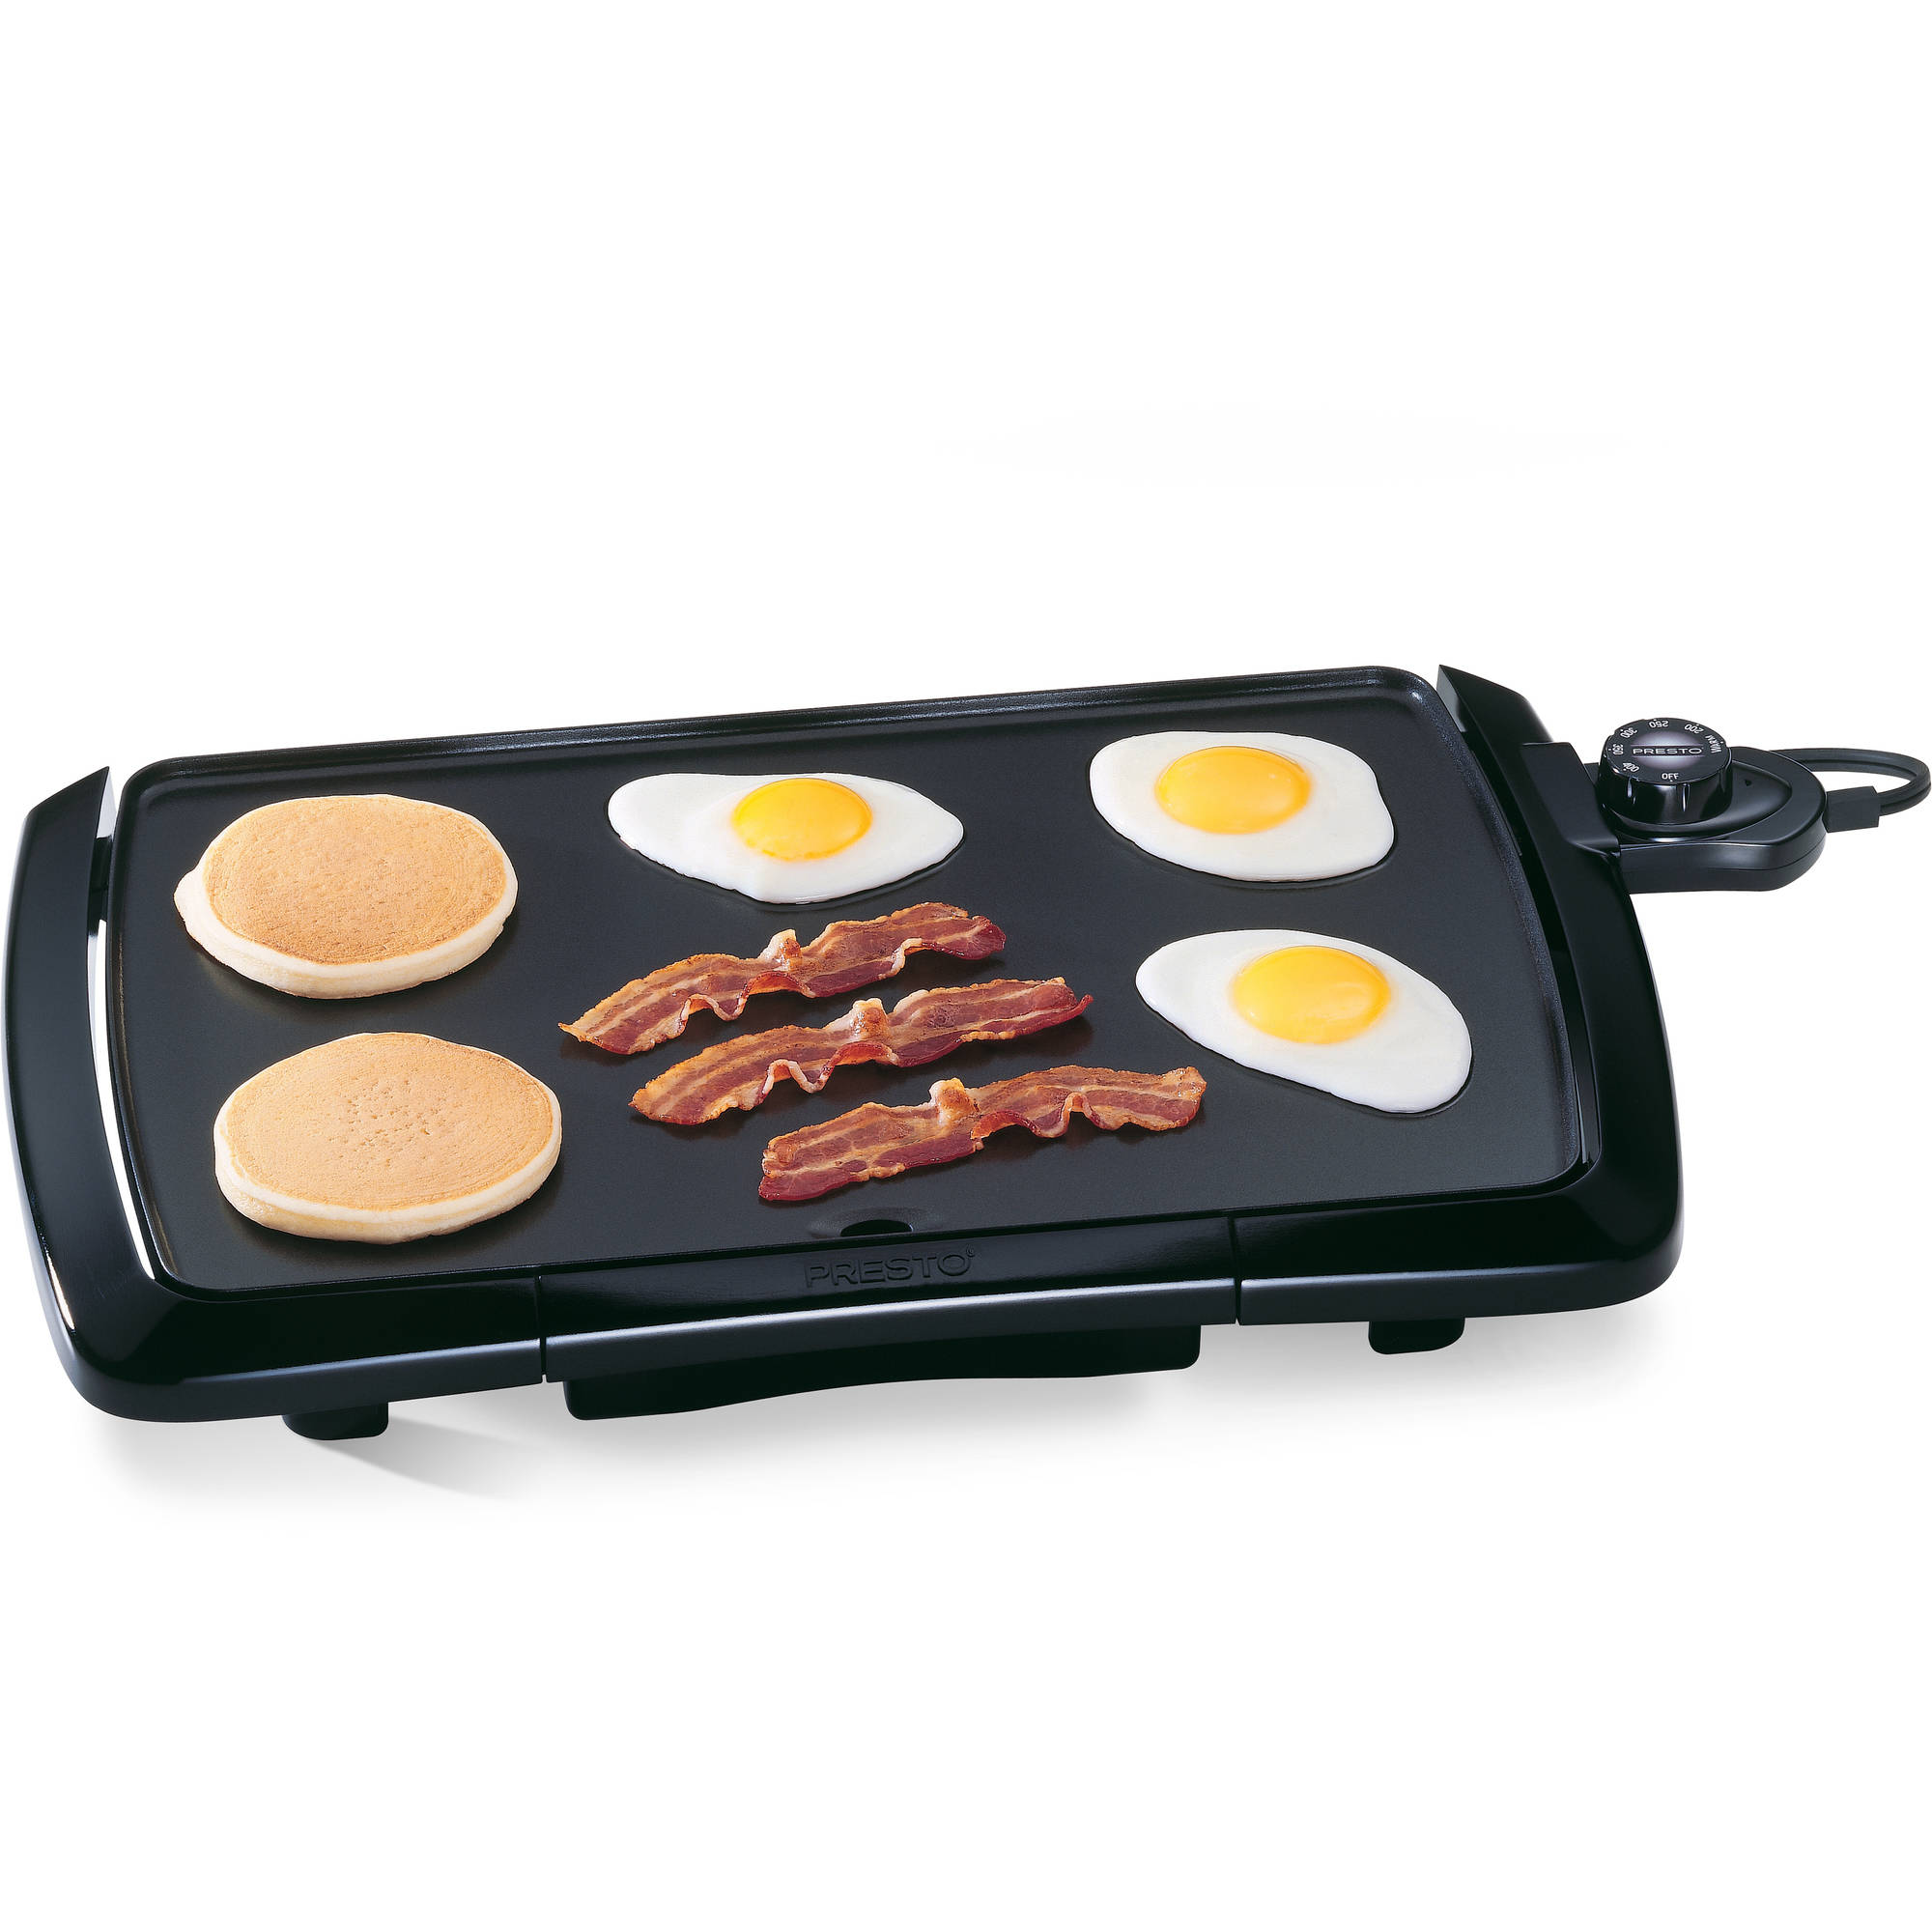 Presto Cool-touch Electric Griddle 07047